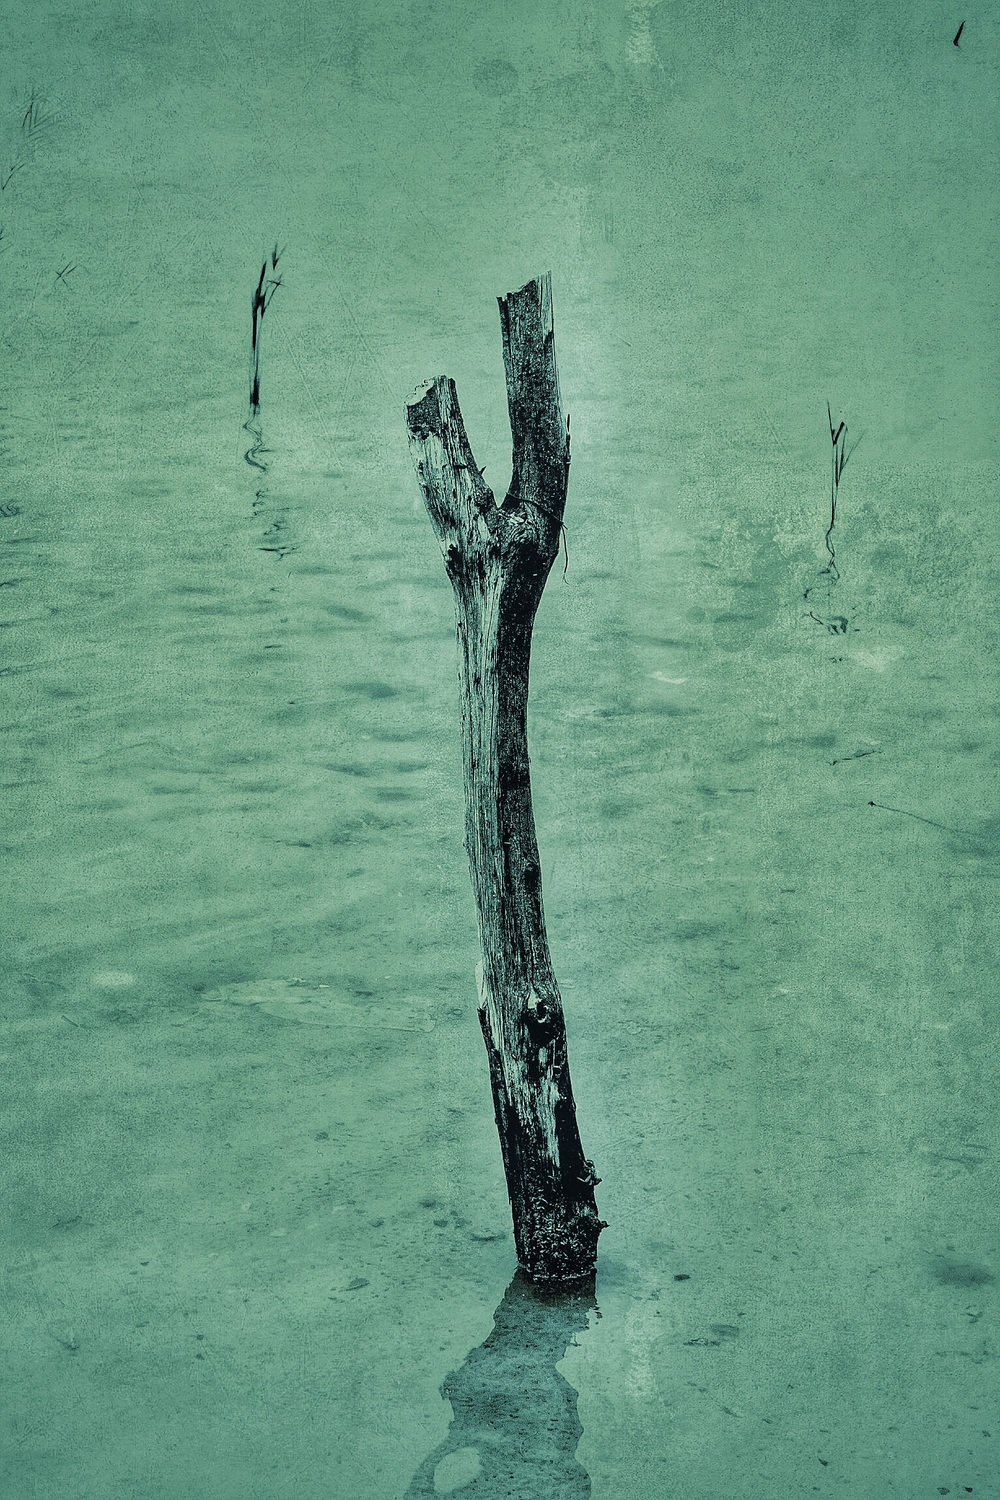 Just a good solid stick in the water    © Neil Cash